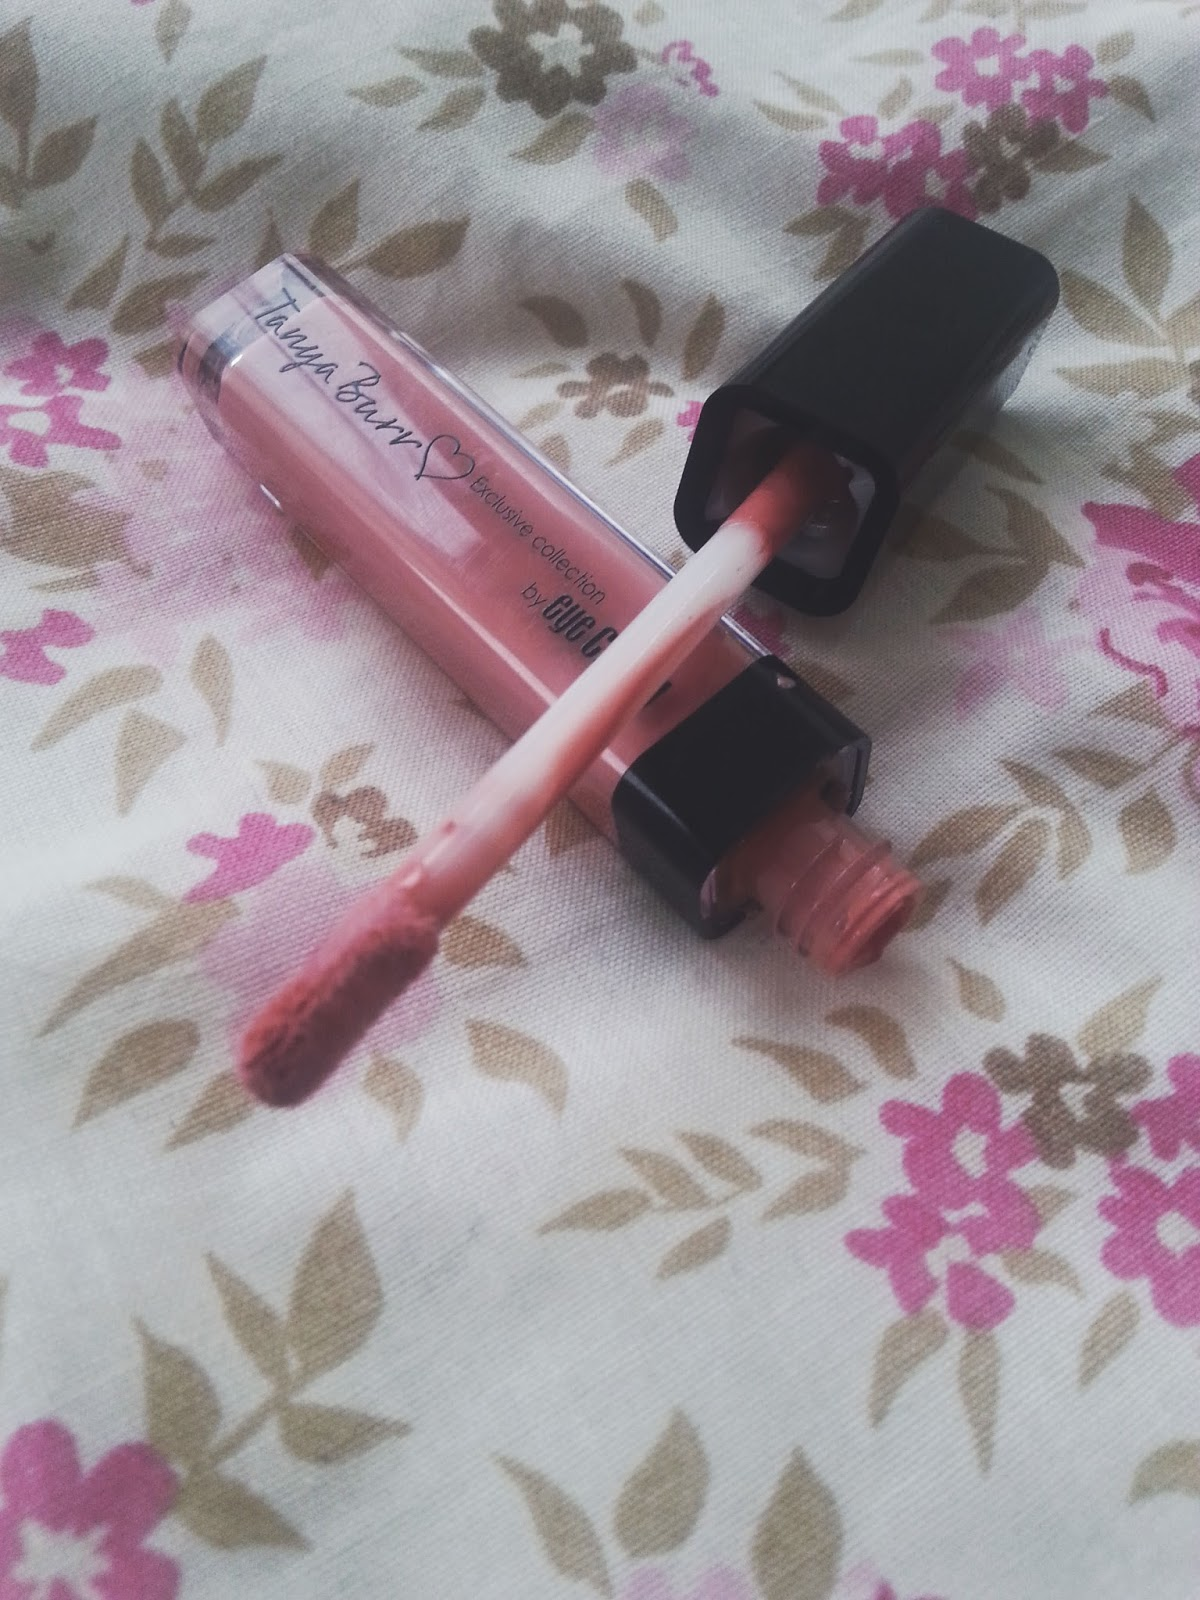 Tanya Burr Lipgloss in Afternoon Tea